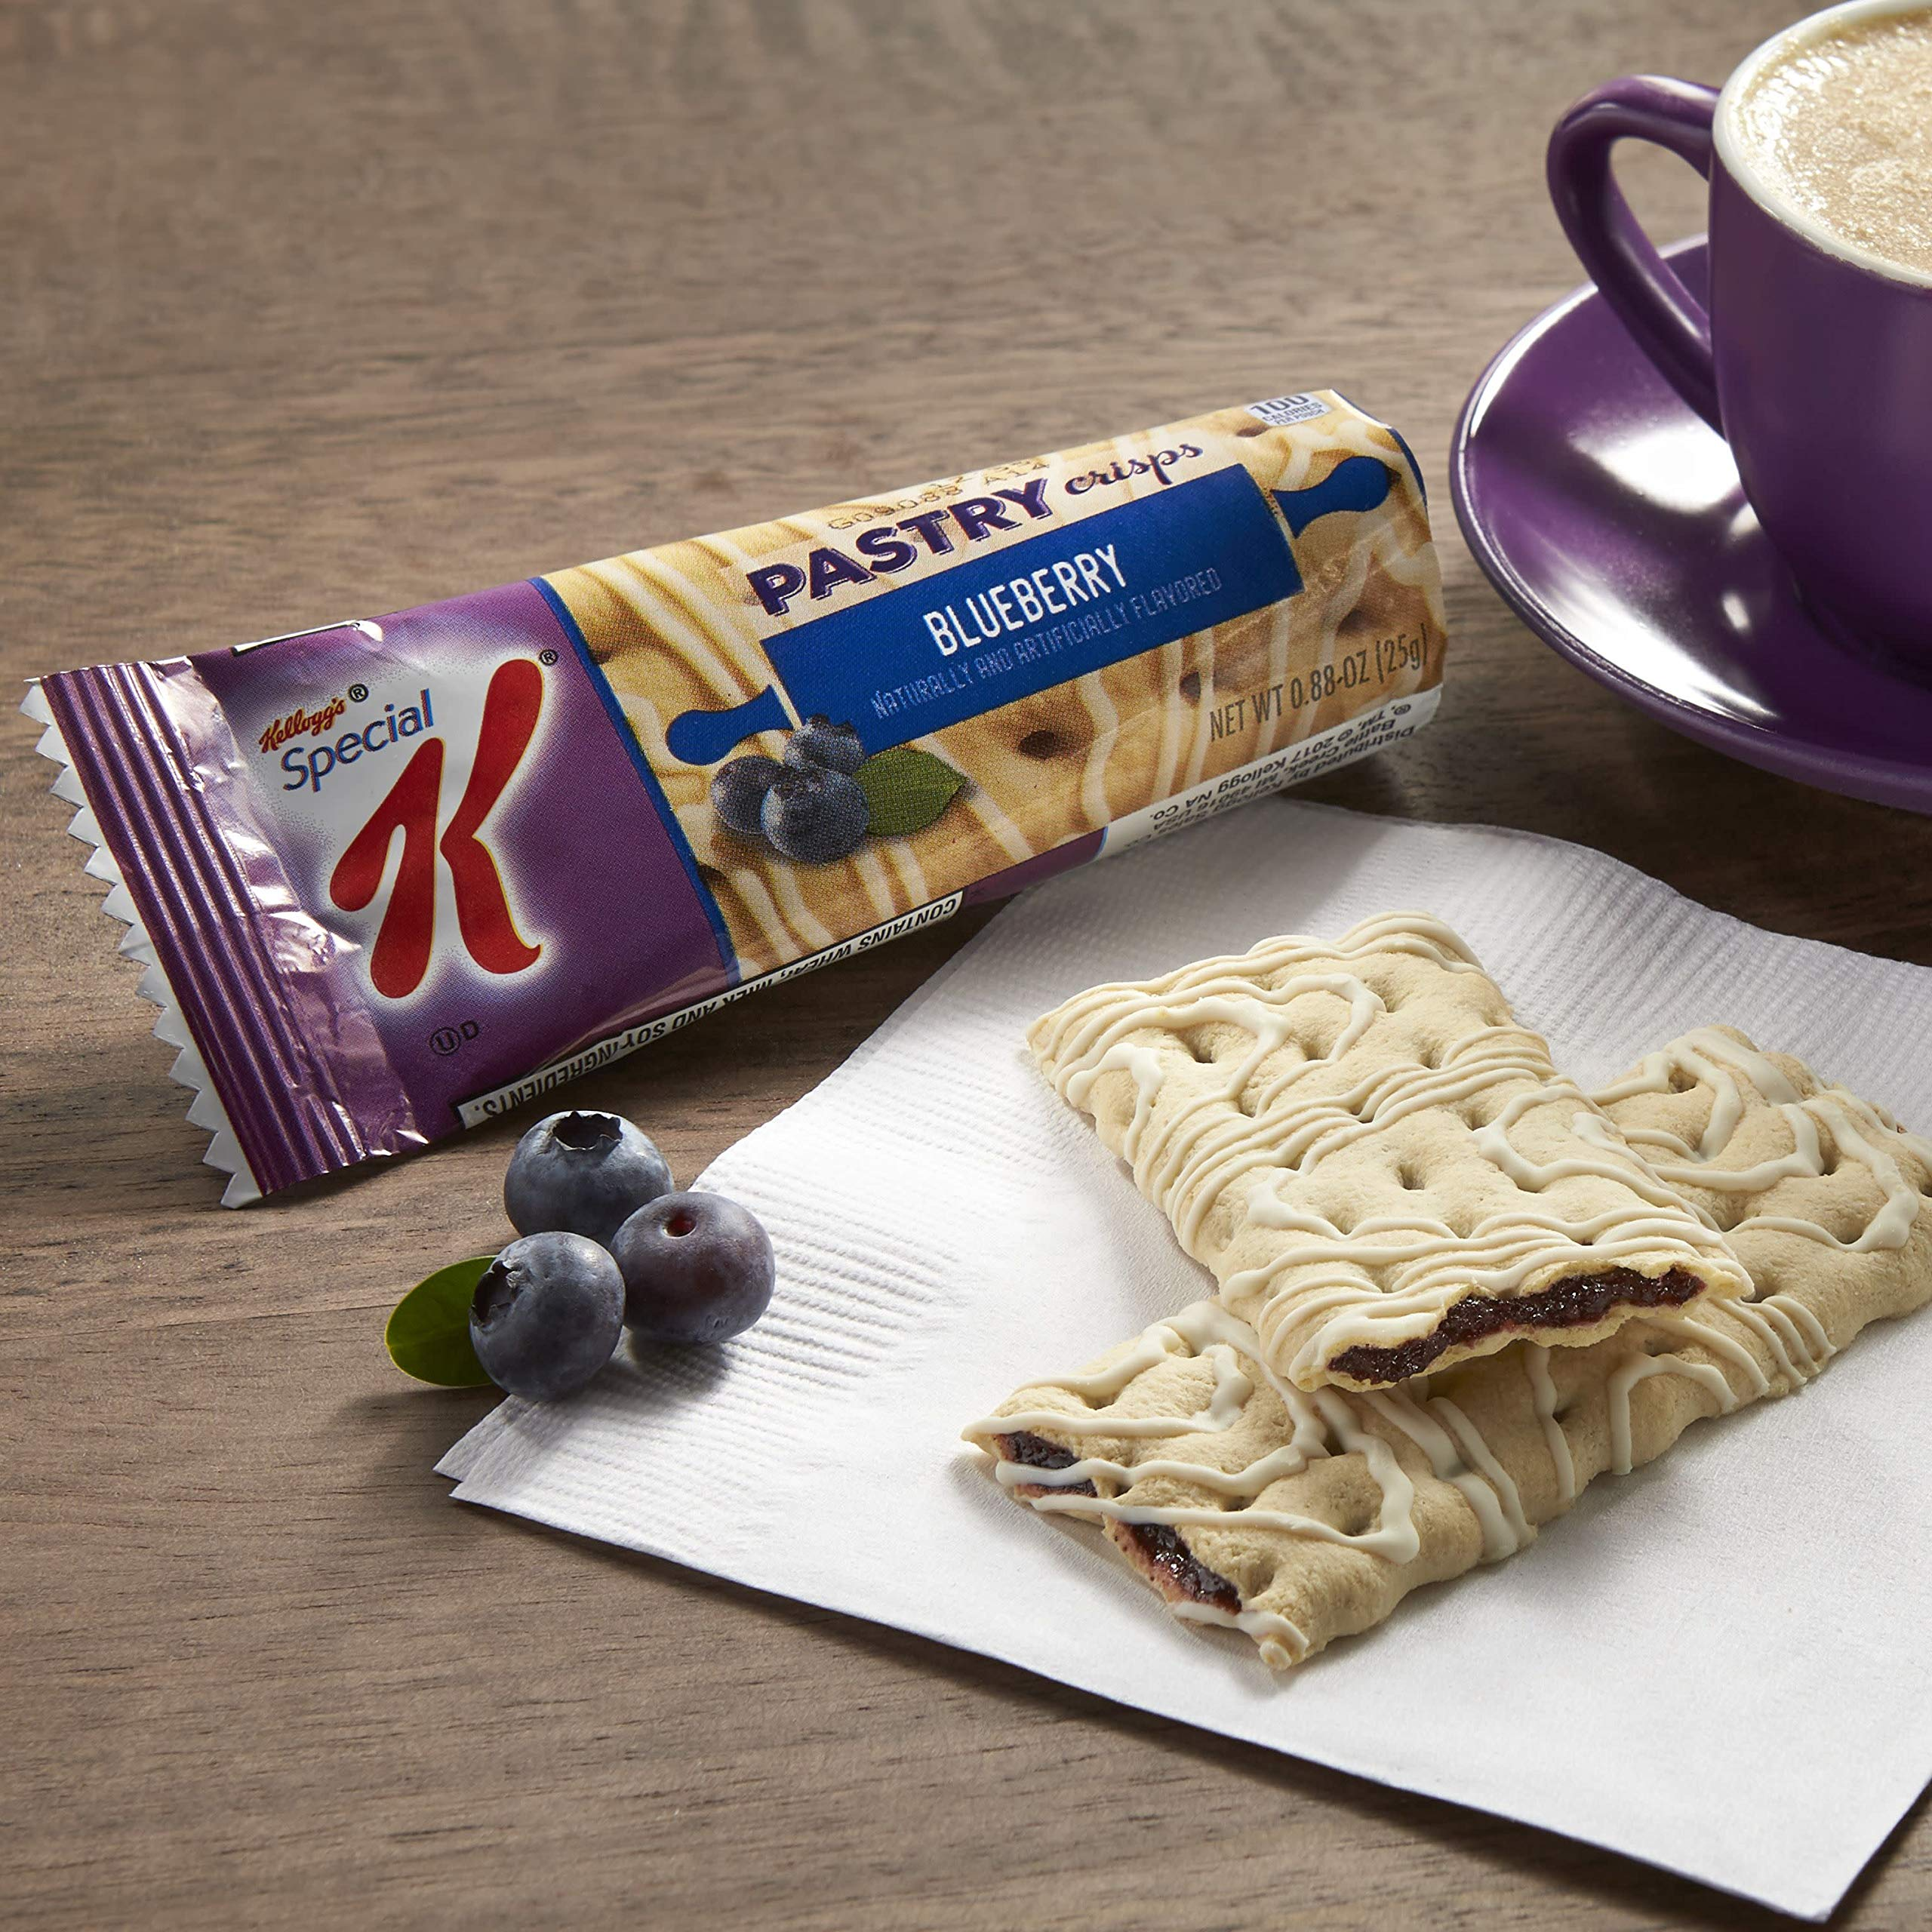 Kellogg's Special K Pastry Crisps, Blueberry, Bulk Size, 162 Count (Pack of 9, 7.92 oz Trays) by Special K (Image #4)